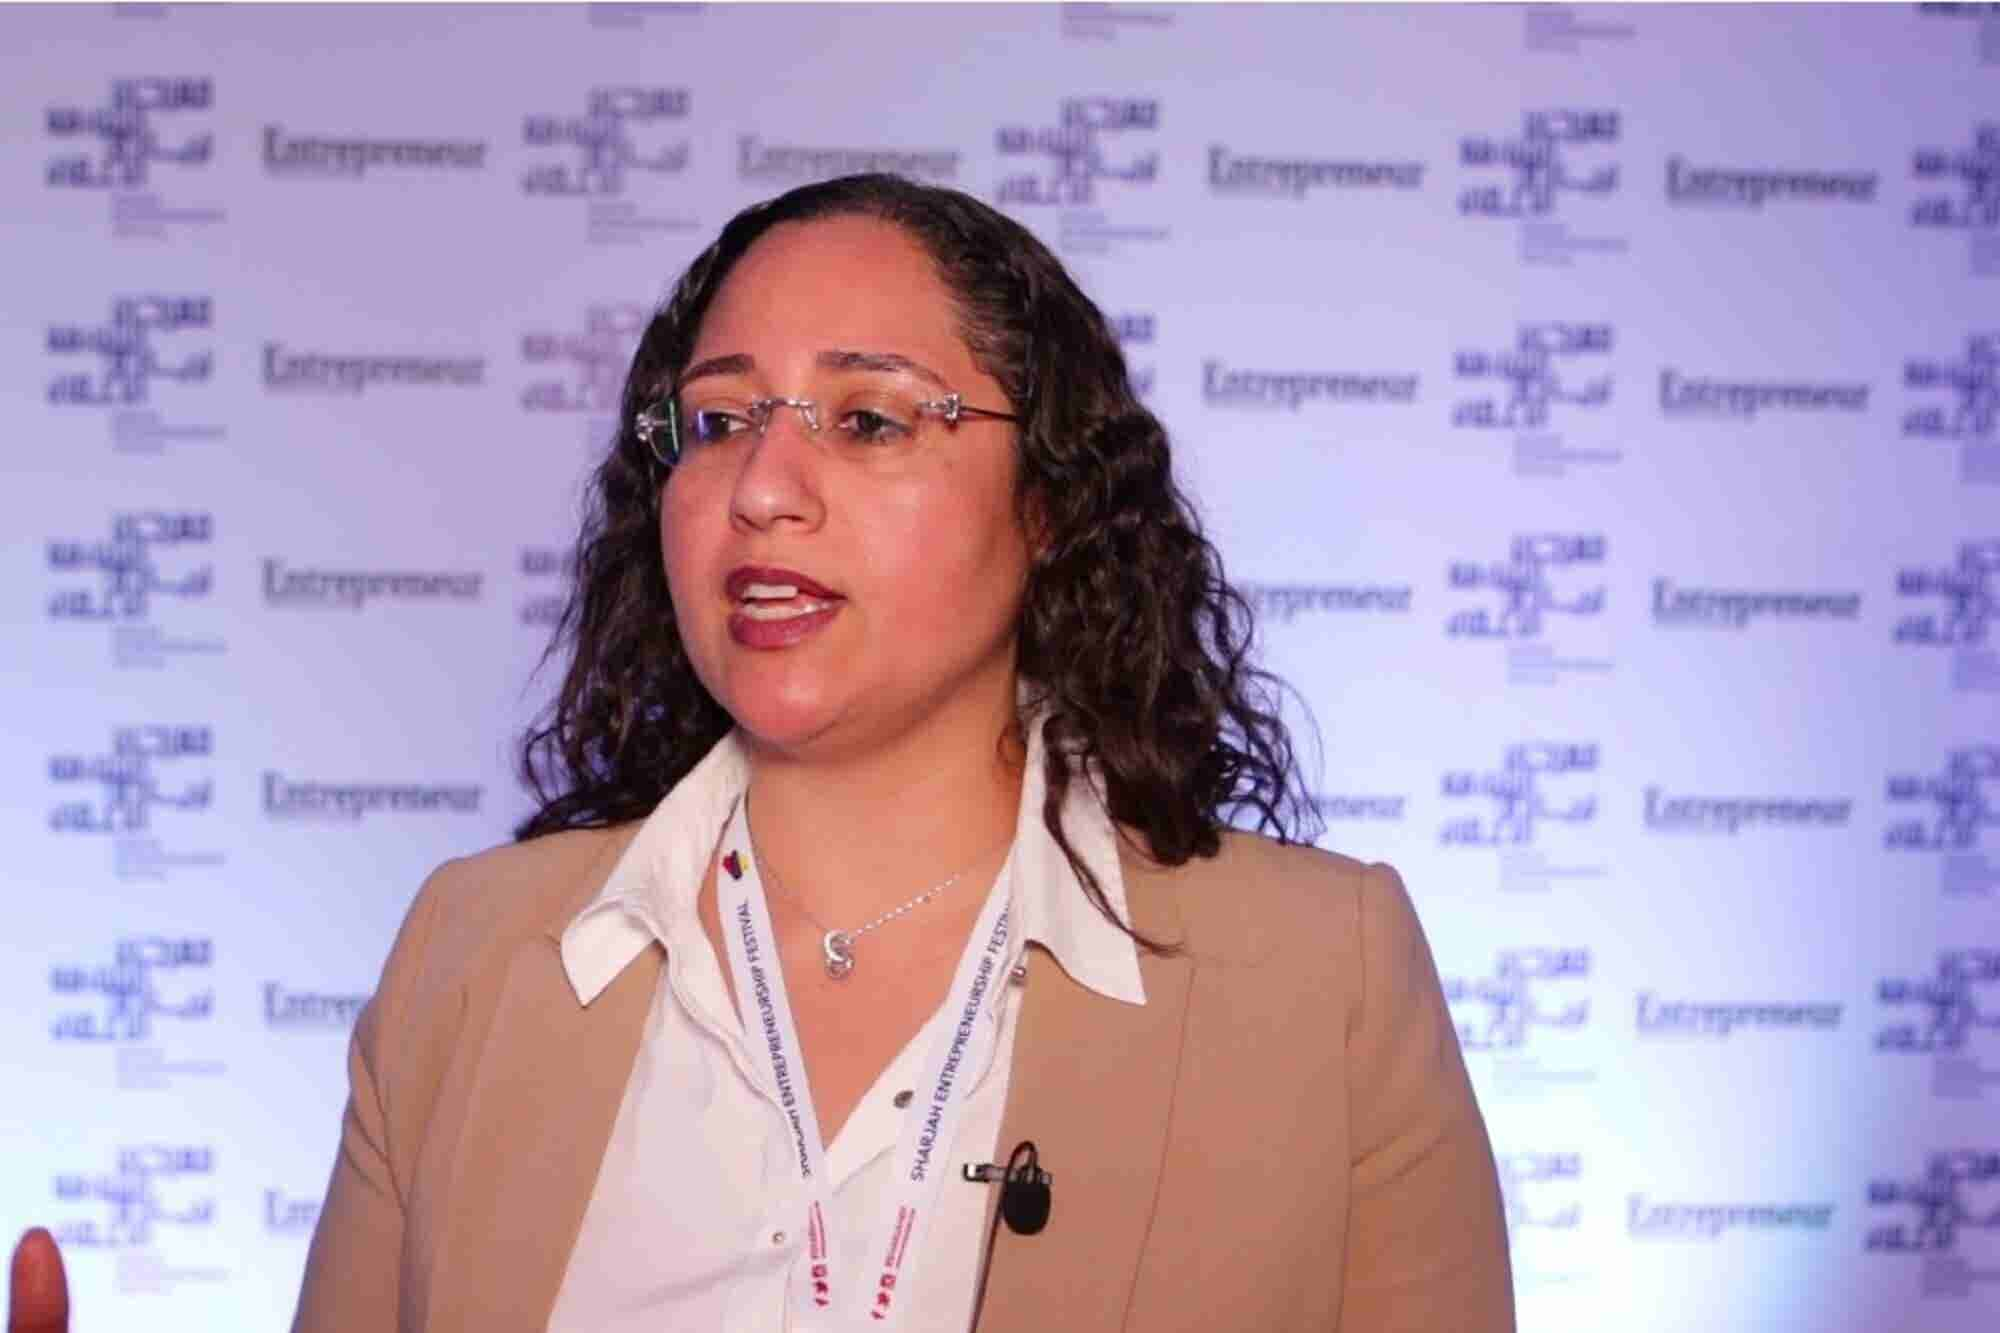 Ahead of the Curve's Dina Sherif Points Out Current Flaws In MENA Entrepreneurship Ecosystem